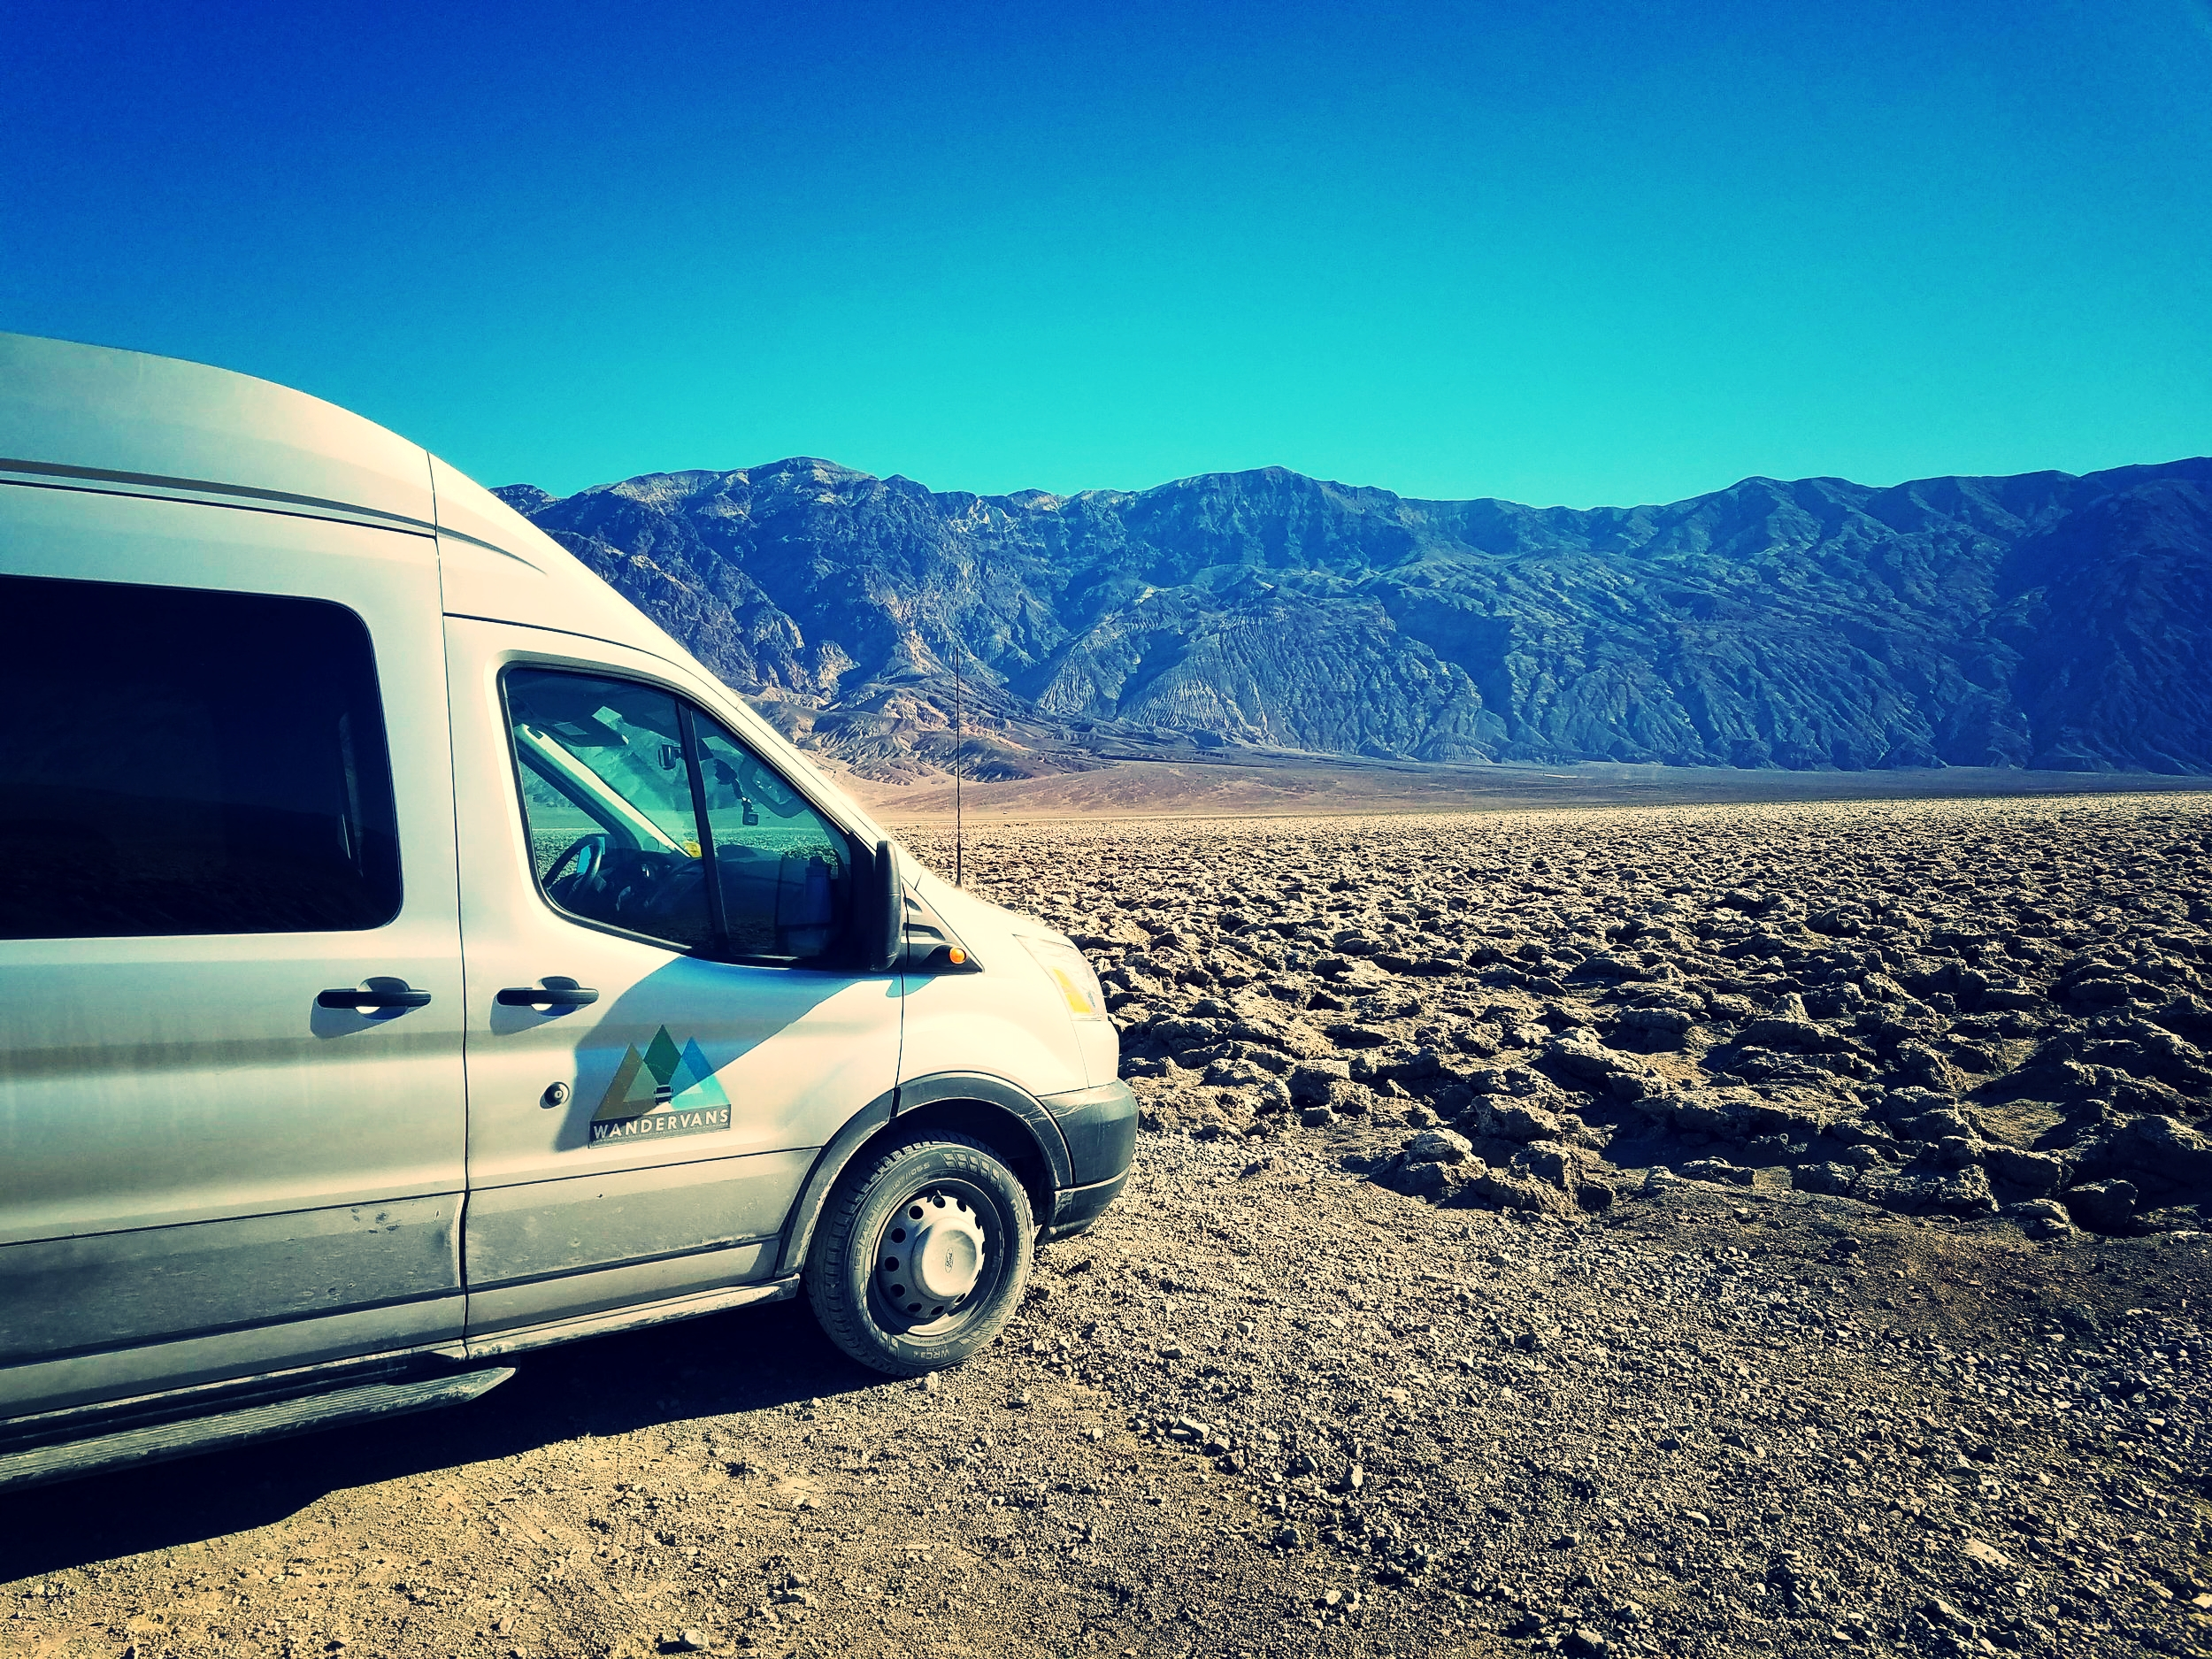 vanlife-rv-campervan-rent-idaho-sun-valley-boise-wandervans-wanderlust-deathvalley-california